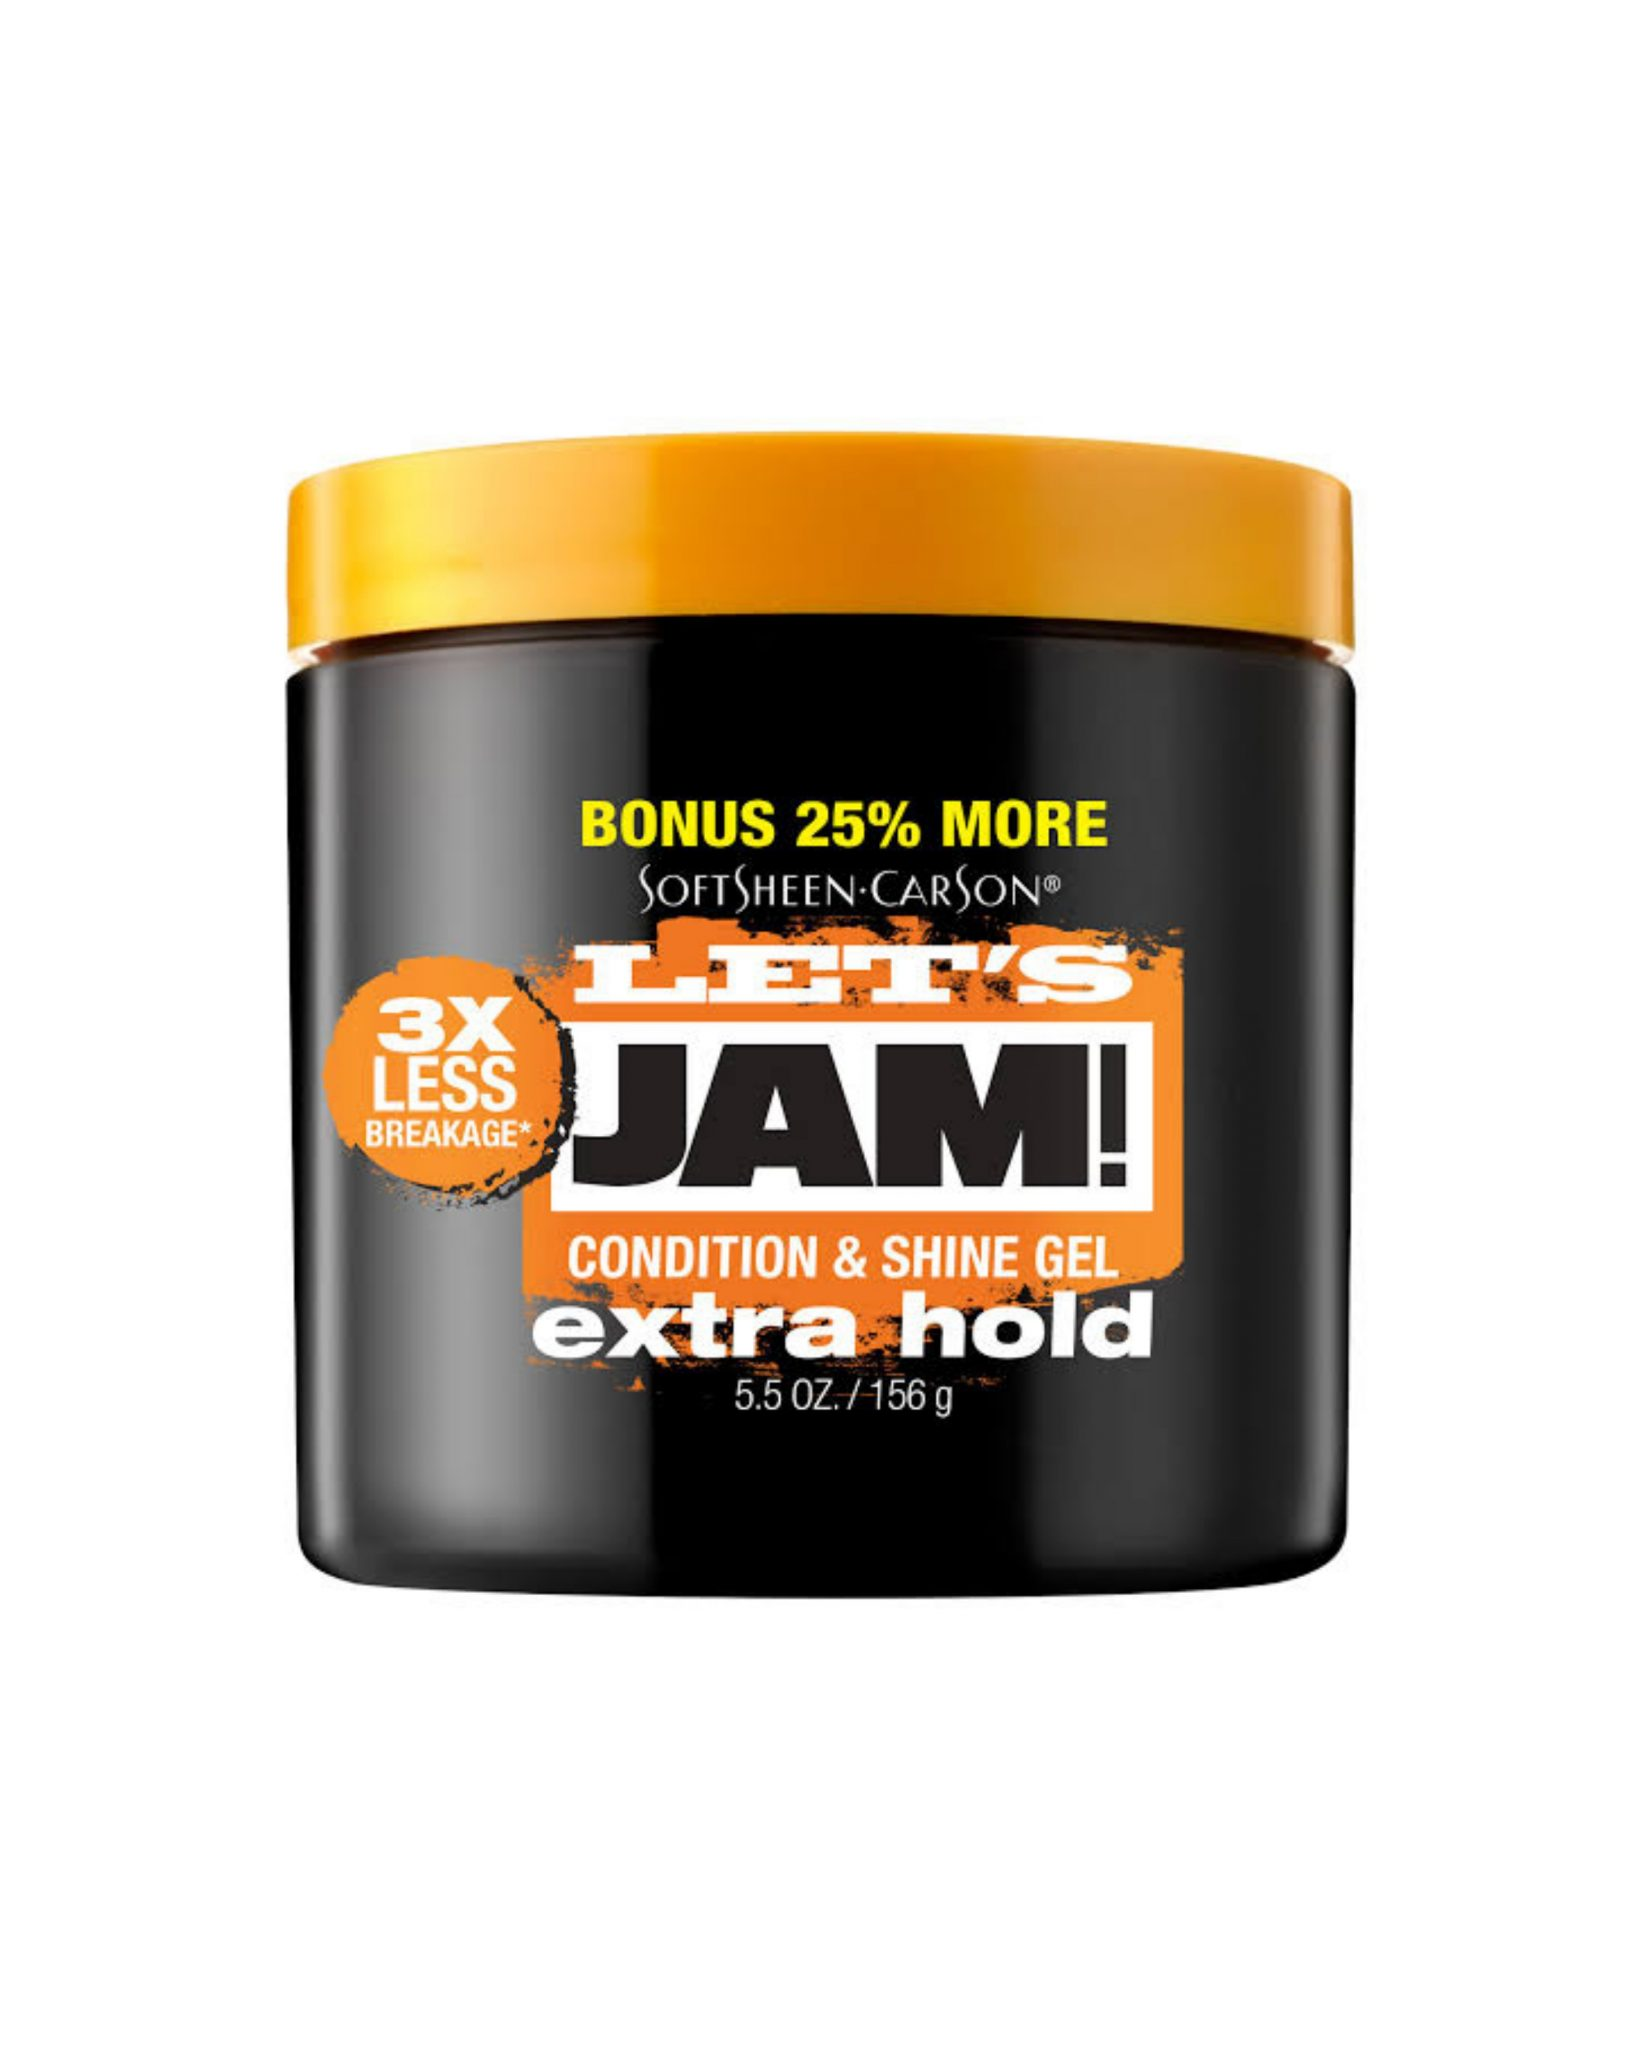 Let's JAM! Condition and Shine Gel EXTRA HOLD (Bonus size – 5.5Oz)